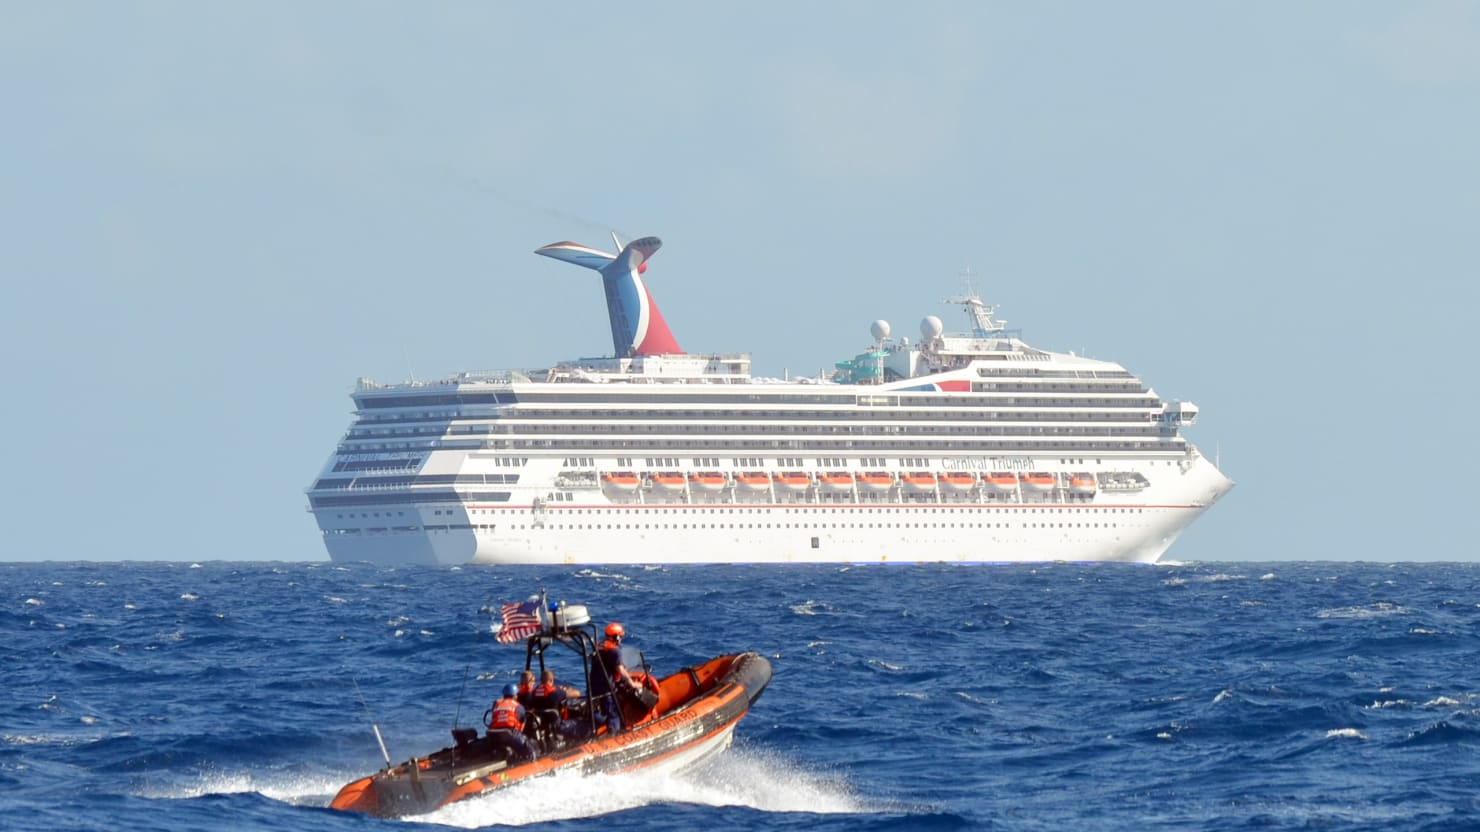 5 forces of carnival cruise line Hurricane matthew, currently a category 4 hurricane with maximum sustained winds of 130 mph, has forced at least four cruise lines (carnival cruise line, disney cruise line, norwegian cruise line, and royal caribbean) to make changes to cruise itineraries in the caribbean and bahamas.